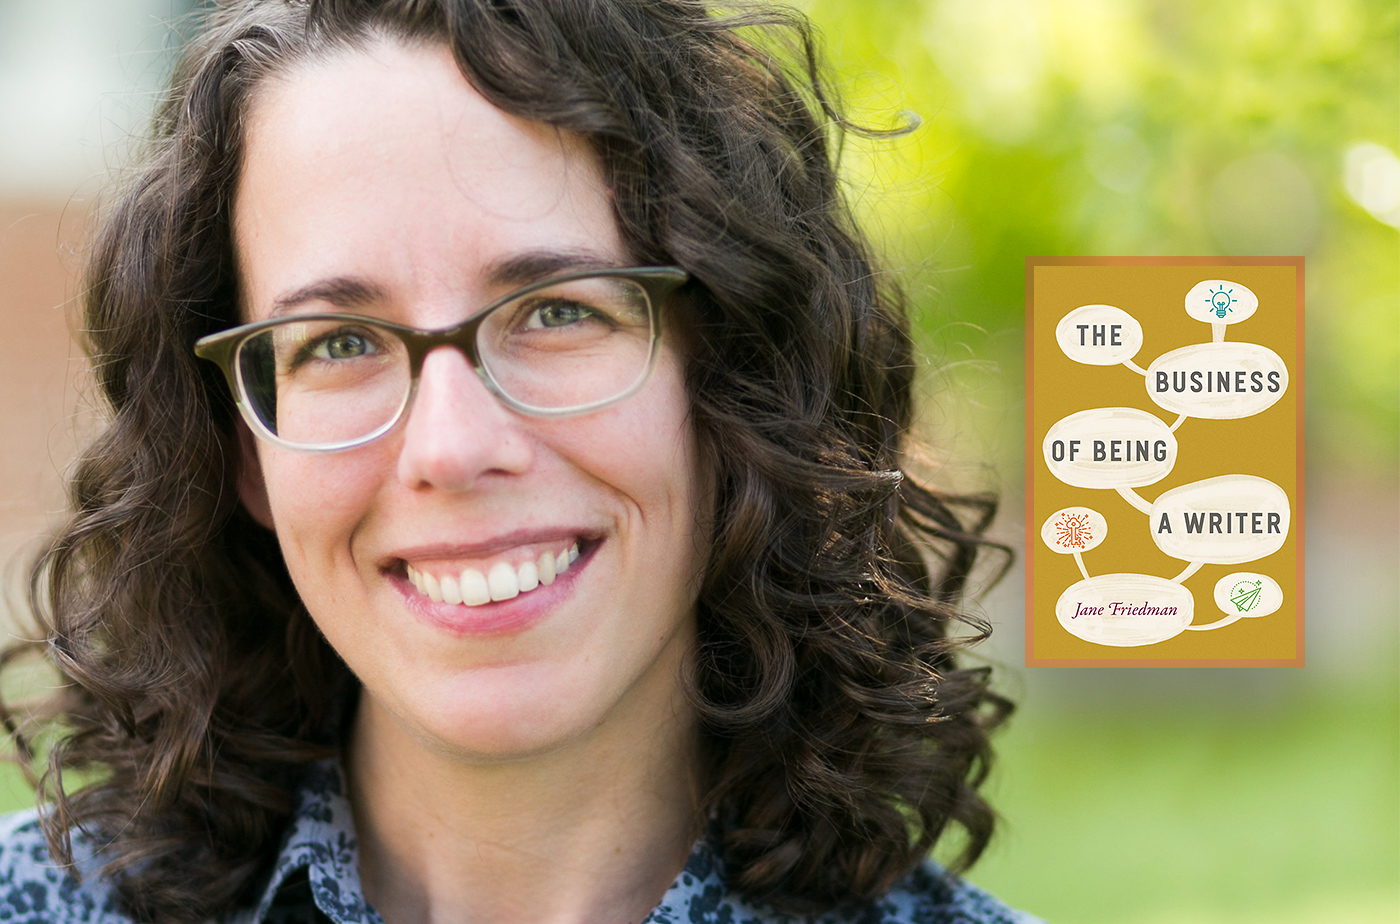 Catapult  classes: Jane Friedman, 3-Hour Publishing Seminar: Building a Sustainable Business Model for Your Writing Career, Publishing, Seminar